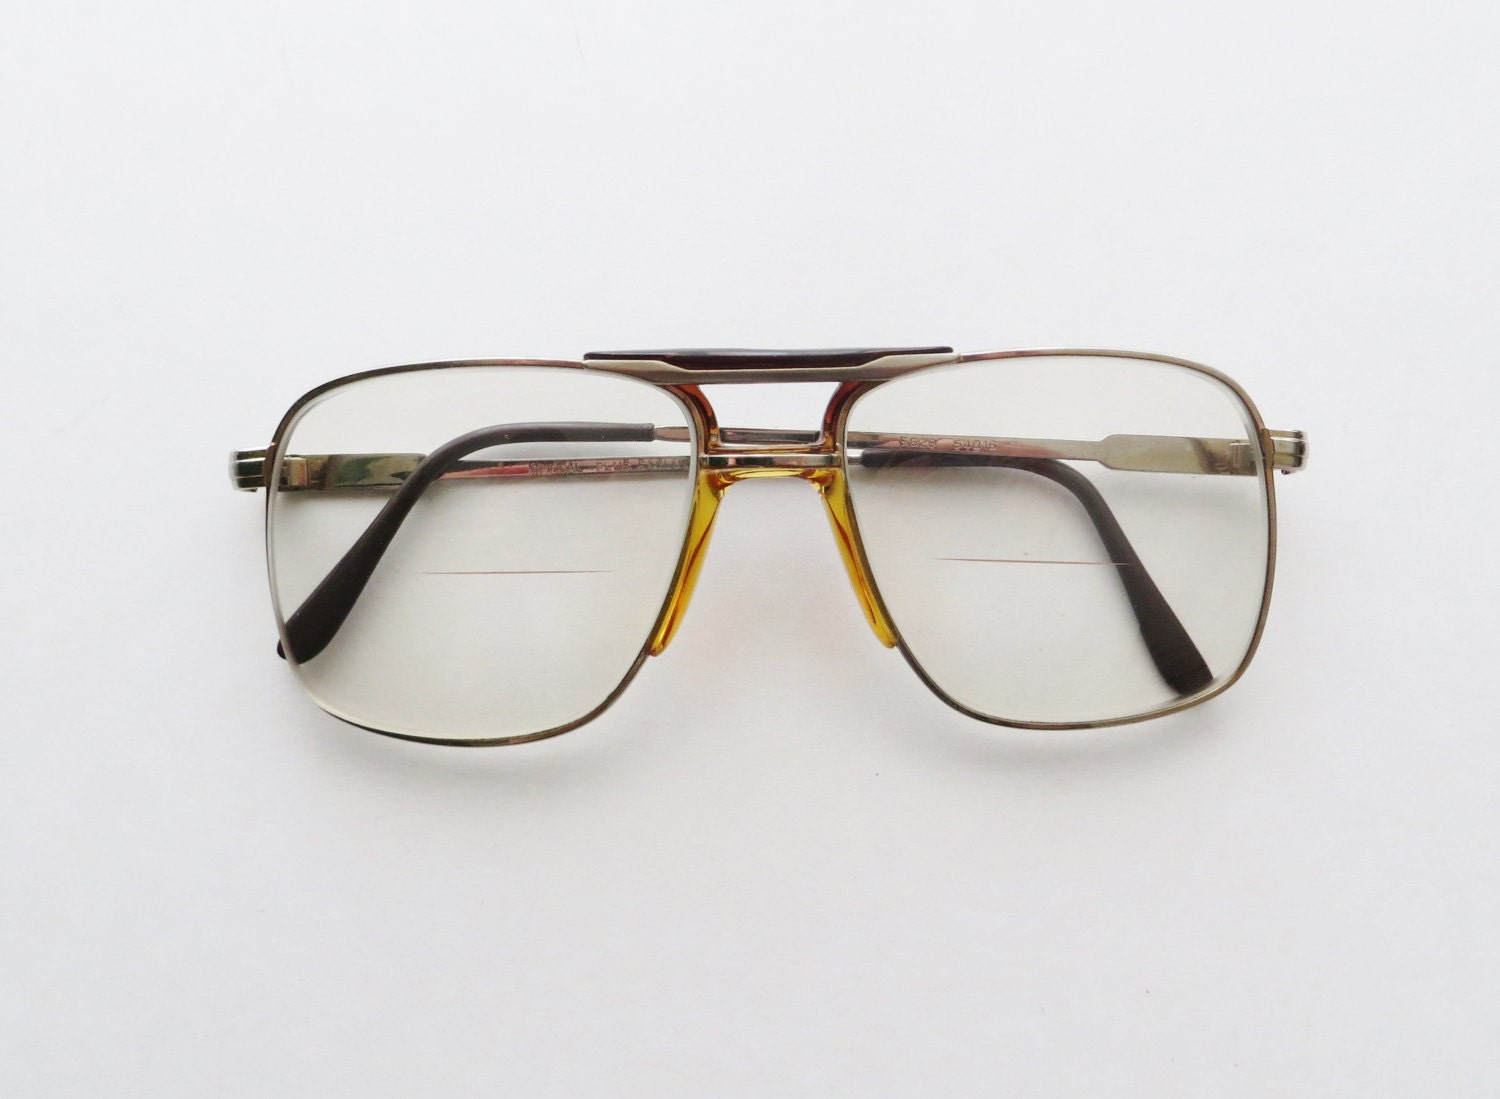 MYKITA OPTICAL GLASSES